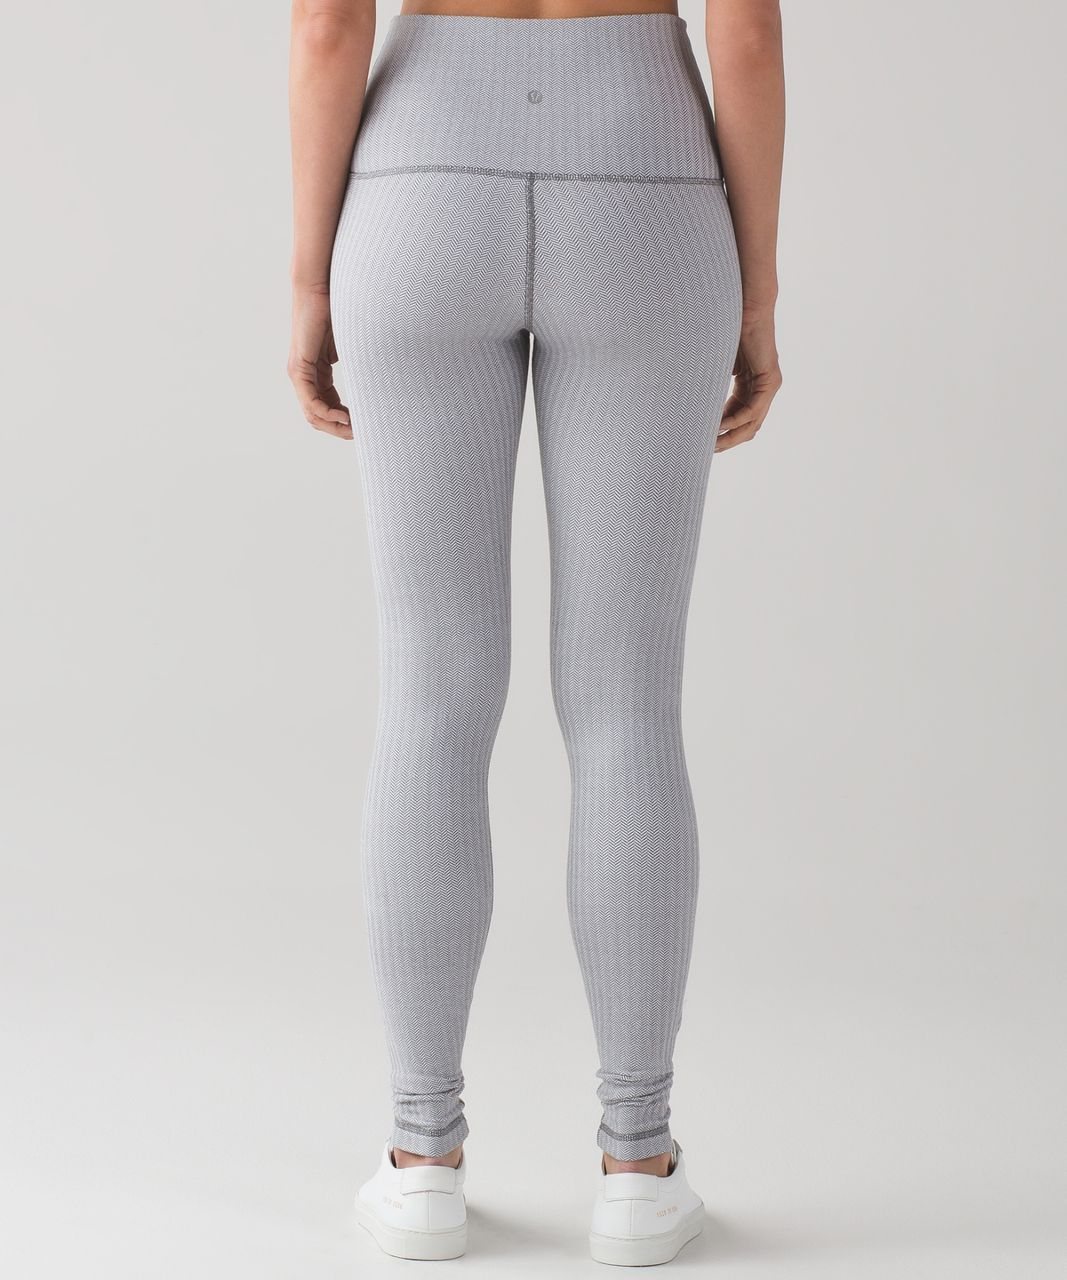 5357afd19 Lululemon Wunder Under Pant (Hi-Rise) - Heathered Herringbone Heathered  White Slate